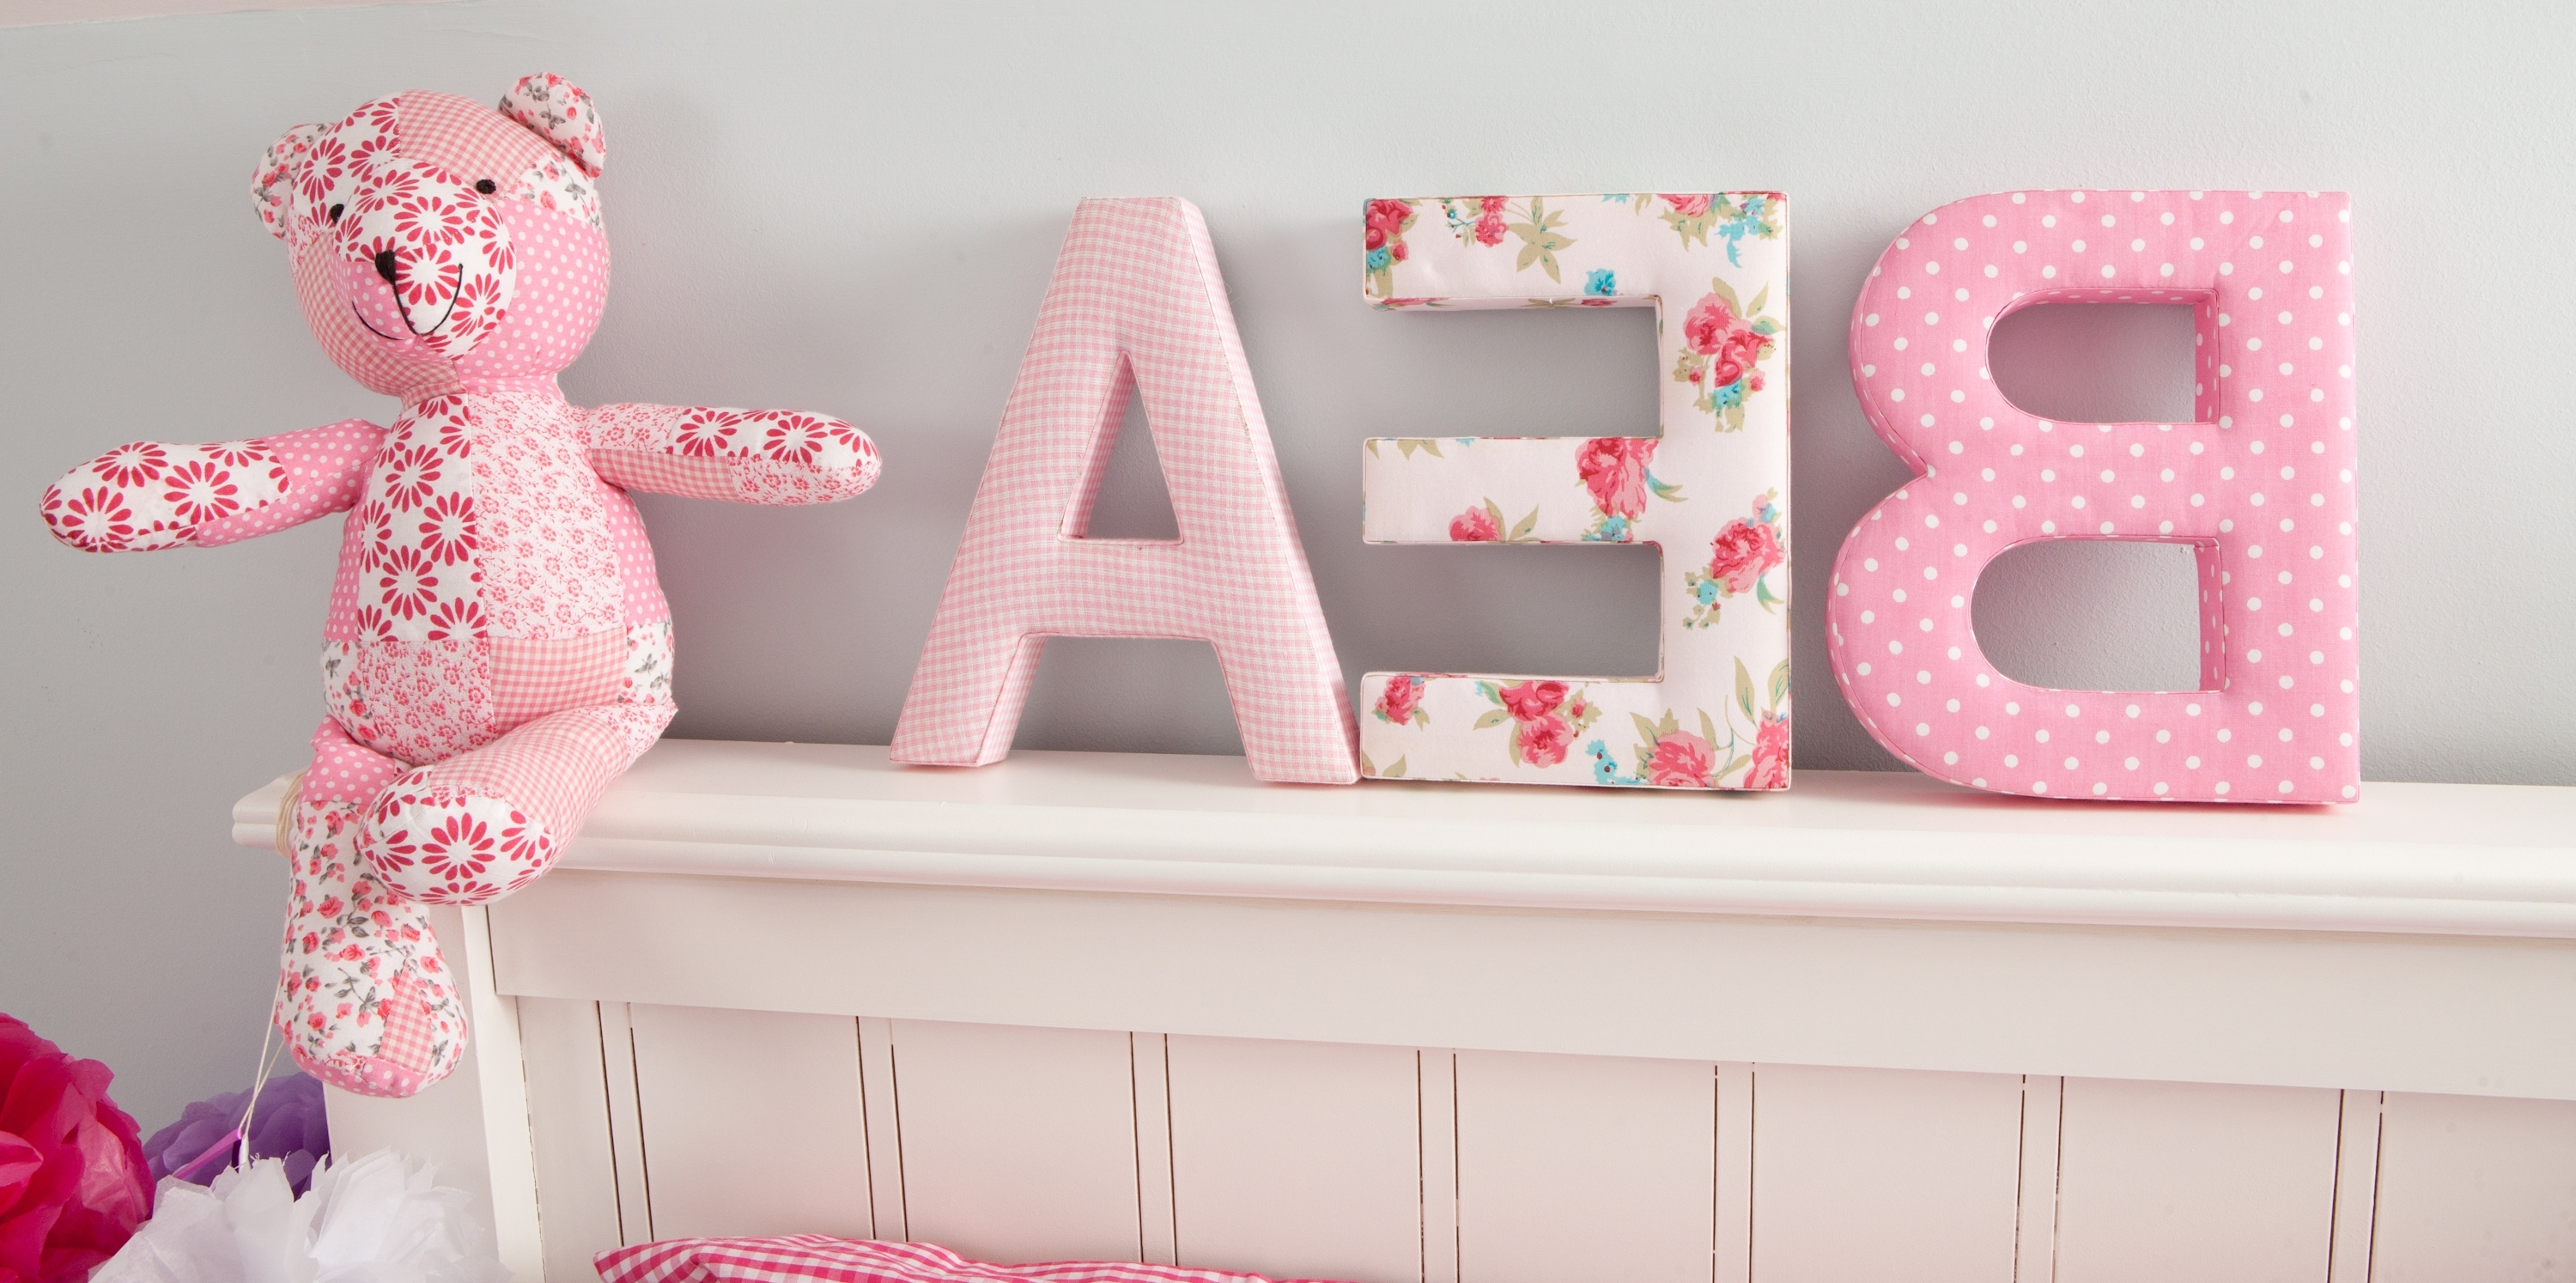 Fashionable Fabric Wall Art Letters Inside Make It Personal With Our Fabric Letters – Babyface Blog (View 10 of 15)